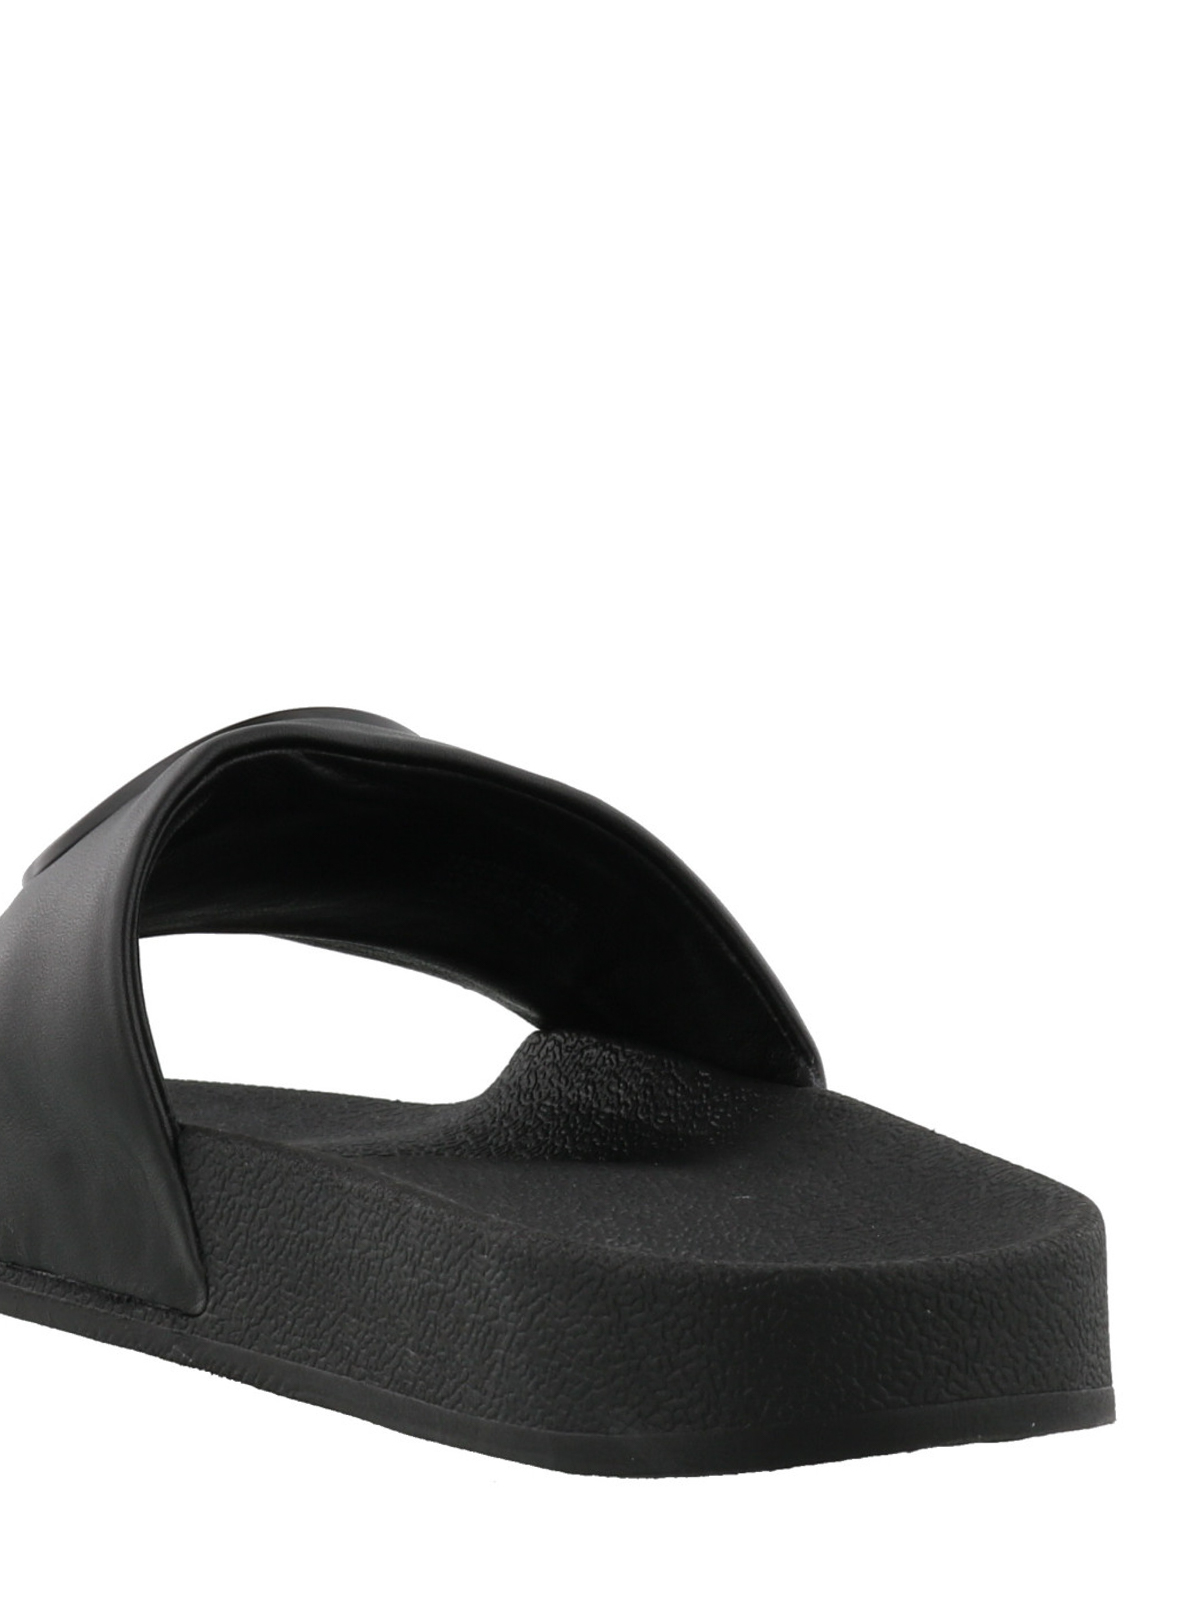 6b5bce6074a Tory Burch - Lina black leather slide sandals - sandals - 45518 001